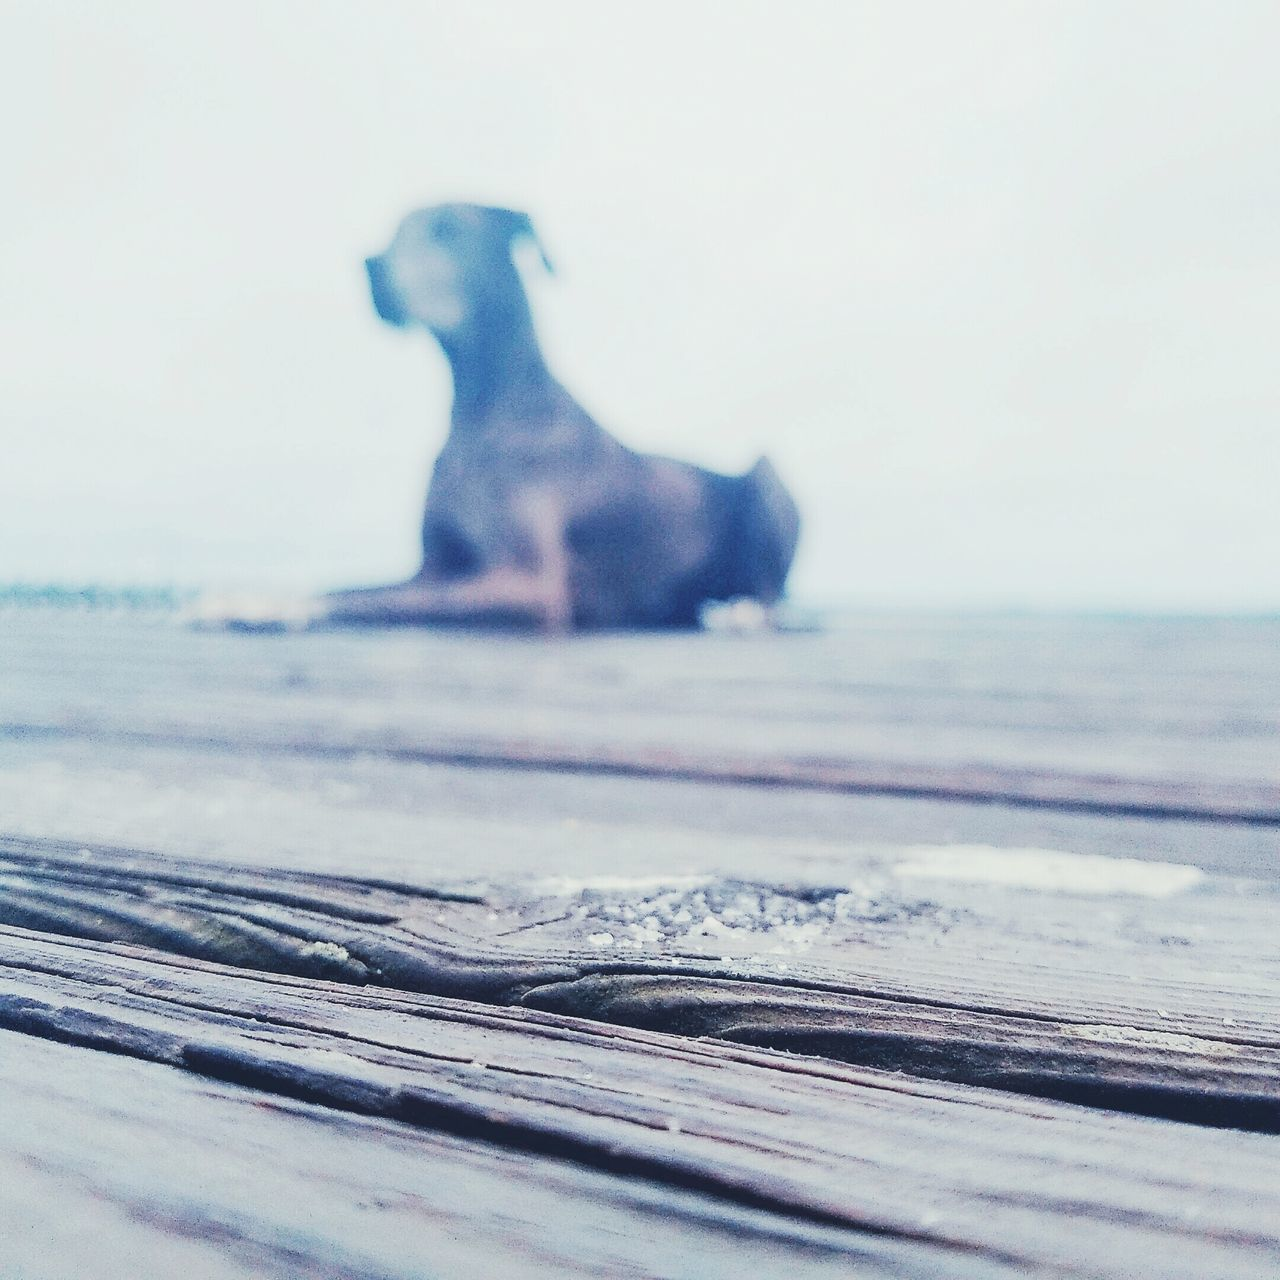 Dog Dog Love Doglover DogLove Doggy Dock Dockside Beach Beachphotography Relaxing Taking Photos Check This Out Cloudy Enjoying Life Water_collection Naturelovers Wood - Material Love It Sillouette Dogsillouette